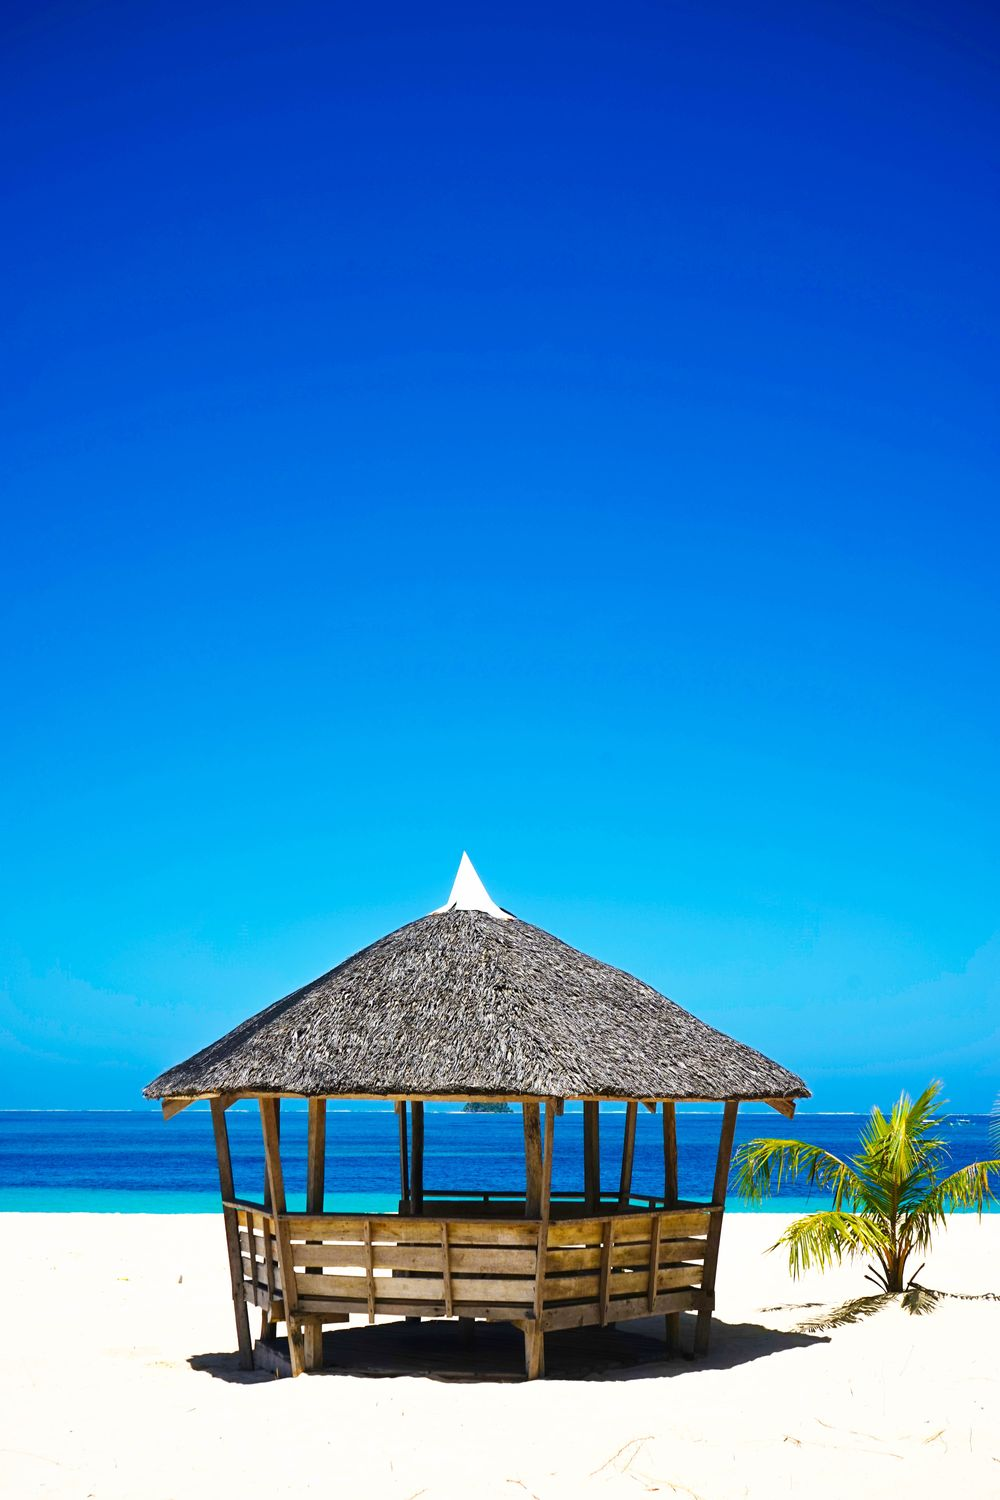 Thatched hut on a white sand beach in Siargao, Philippines